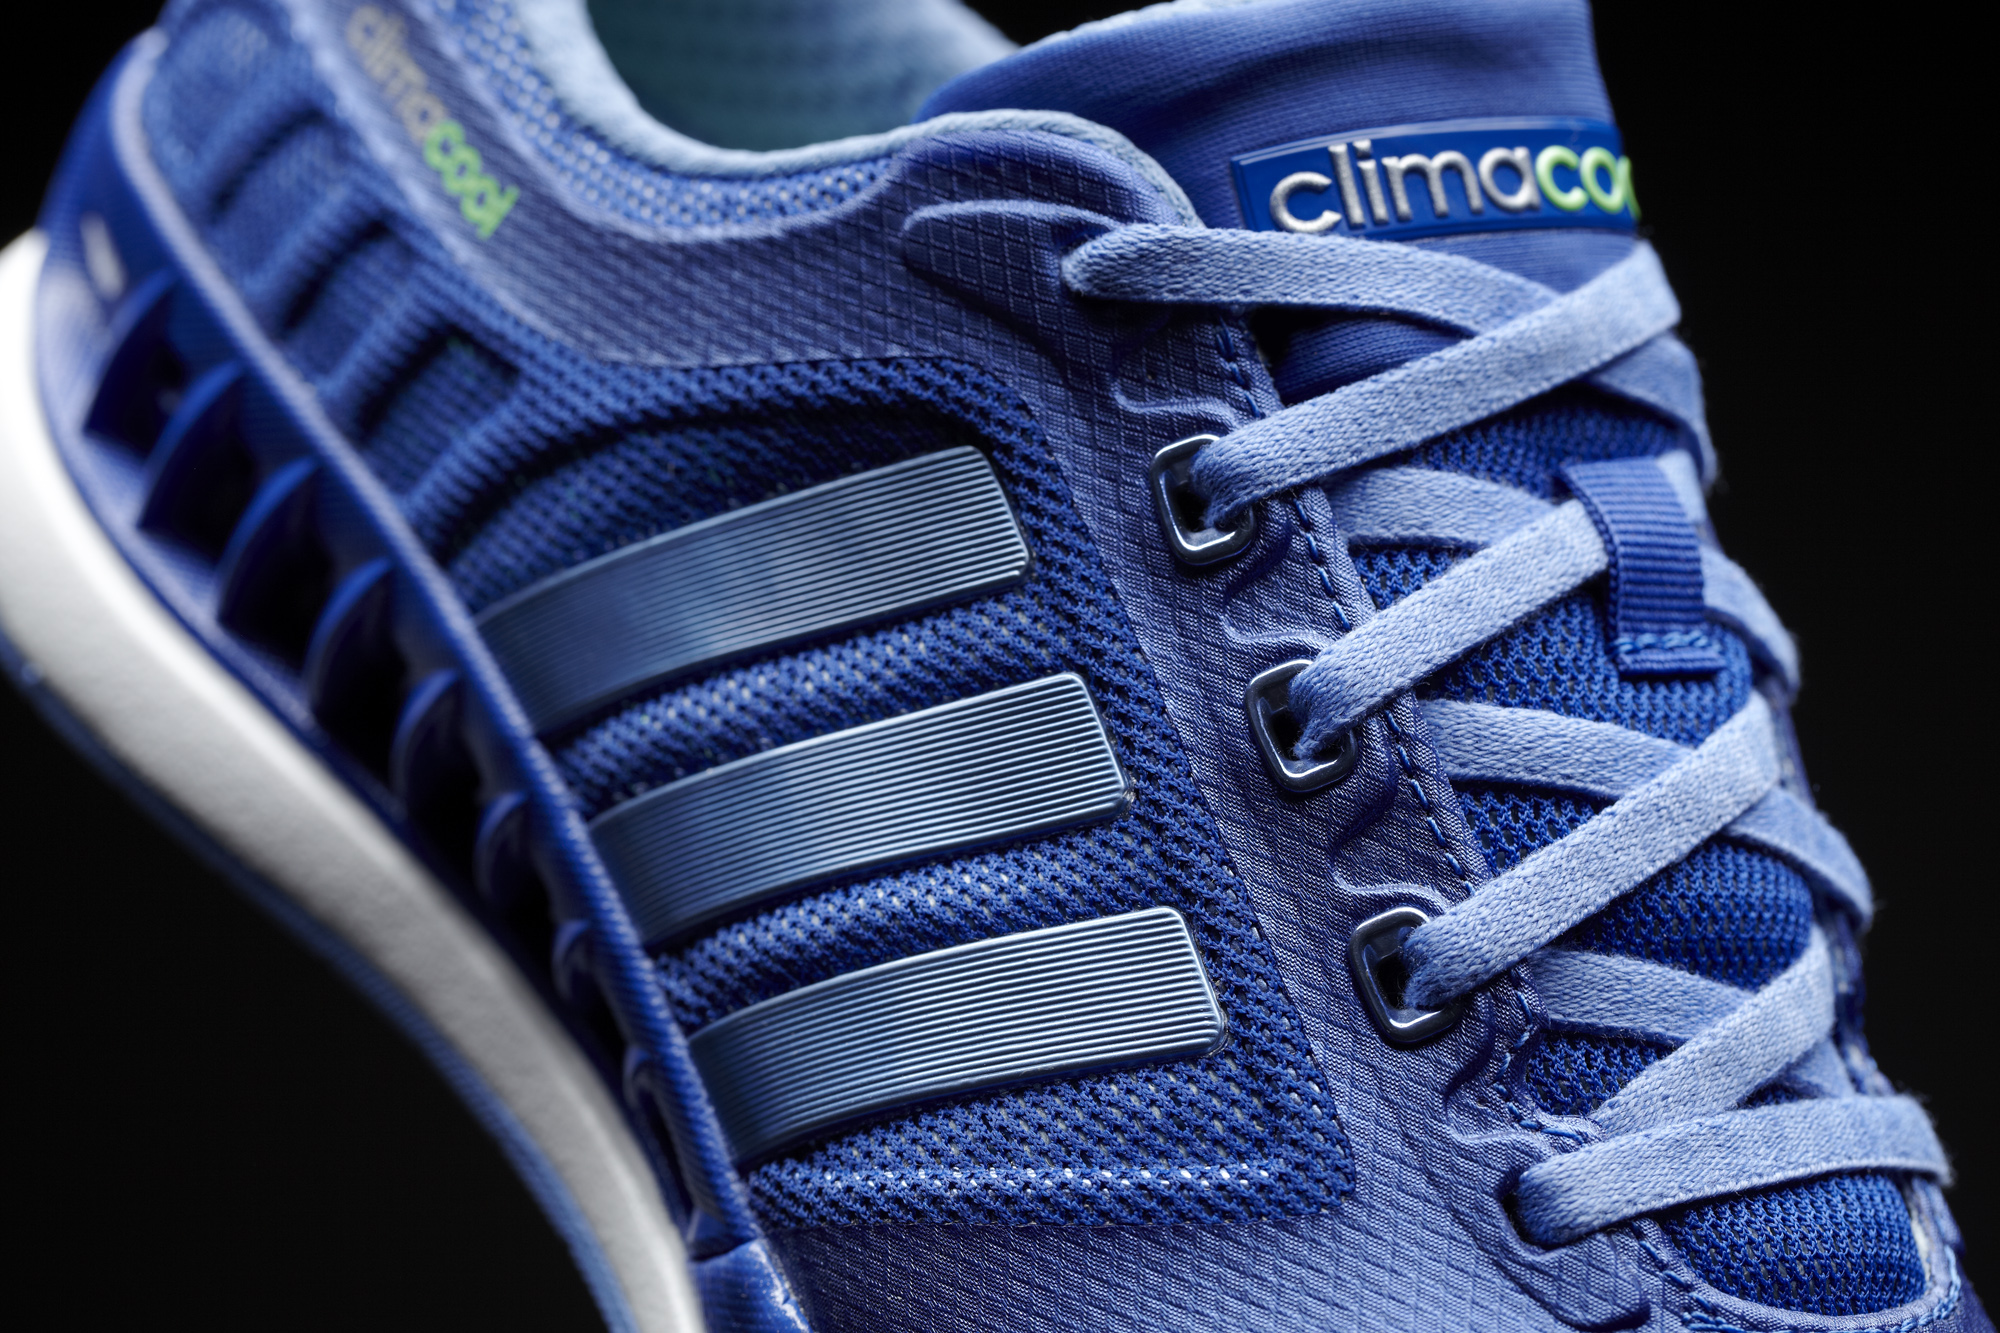 competitive price 0c3f1 4790c adidas Climacool Revolution 2013 | Pinoy Fitness